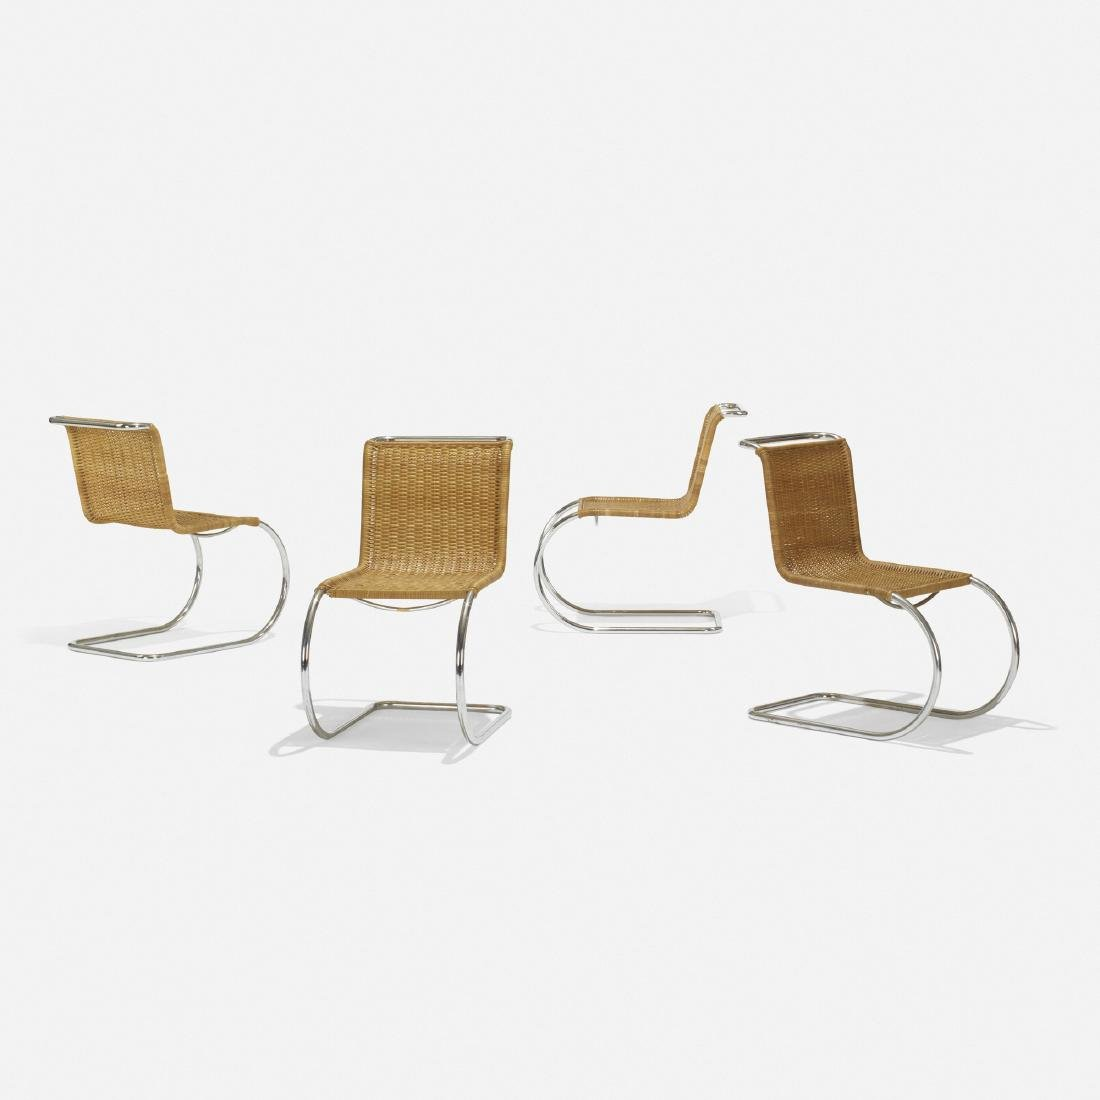 Ludwig Mies van der Rohe, MR20 and MR10 chairs - 2